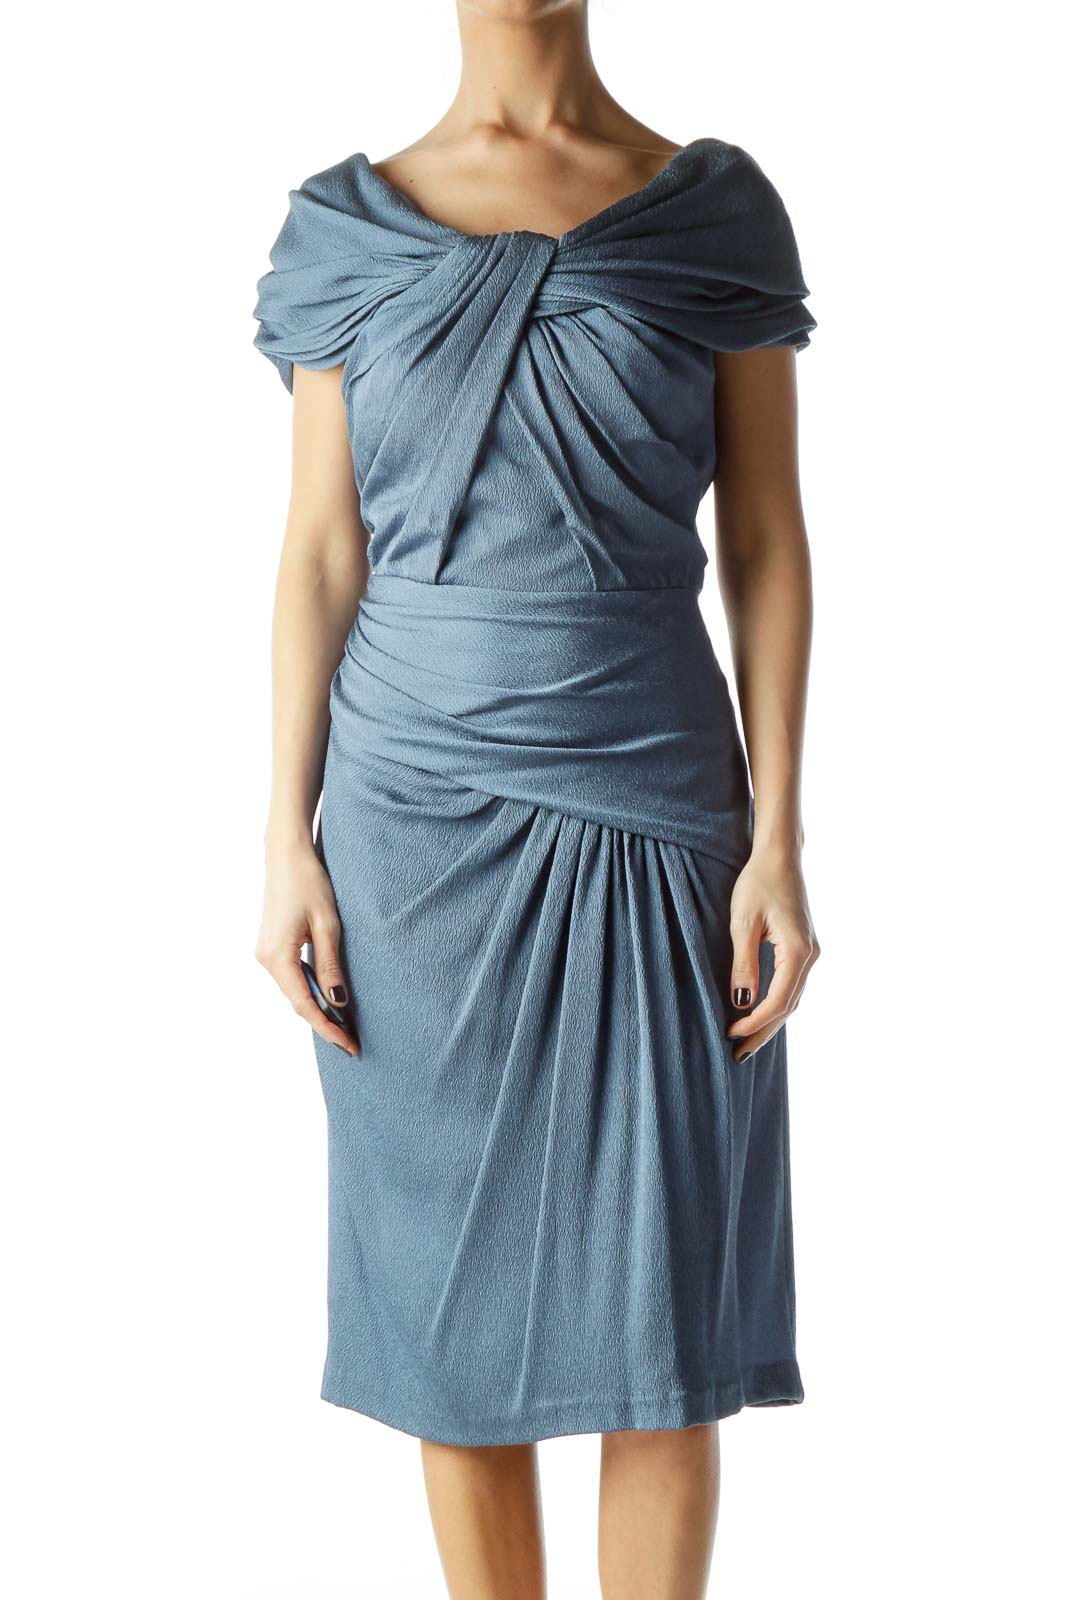 Blue Strapless Scrunched Dress